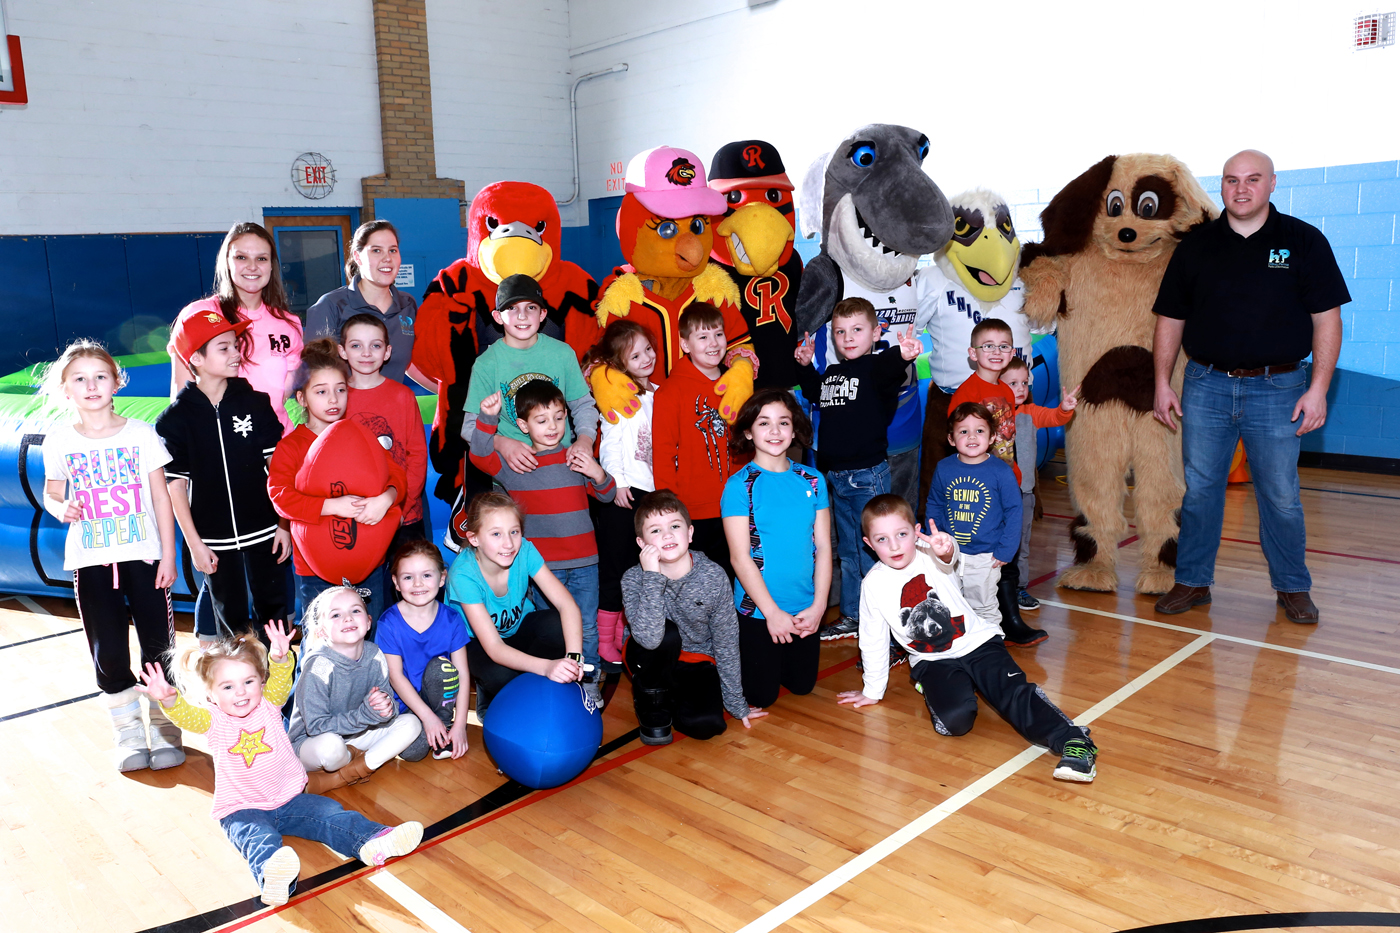 Participants in the 2017 Winter Fest Family Day of Play in Hilton enjoy Mascot Madness. The event returns January 27 to the Hilton Community Center. Photo provided by Tom Venniro, Town of Parma Parks and Recreation Director